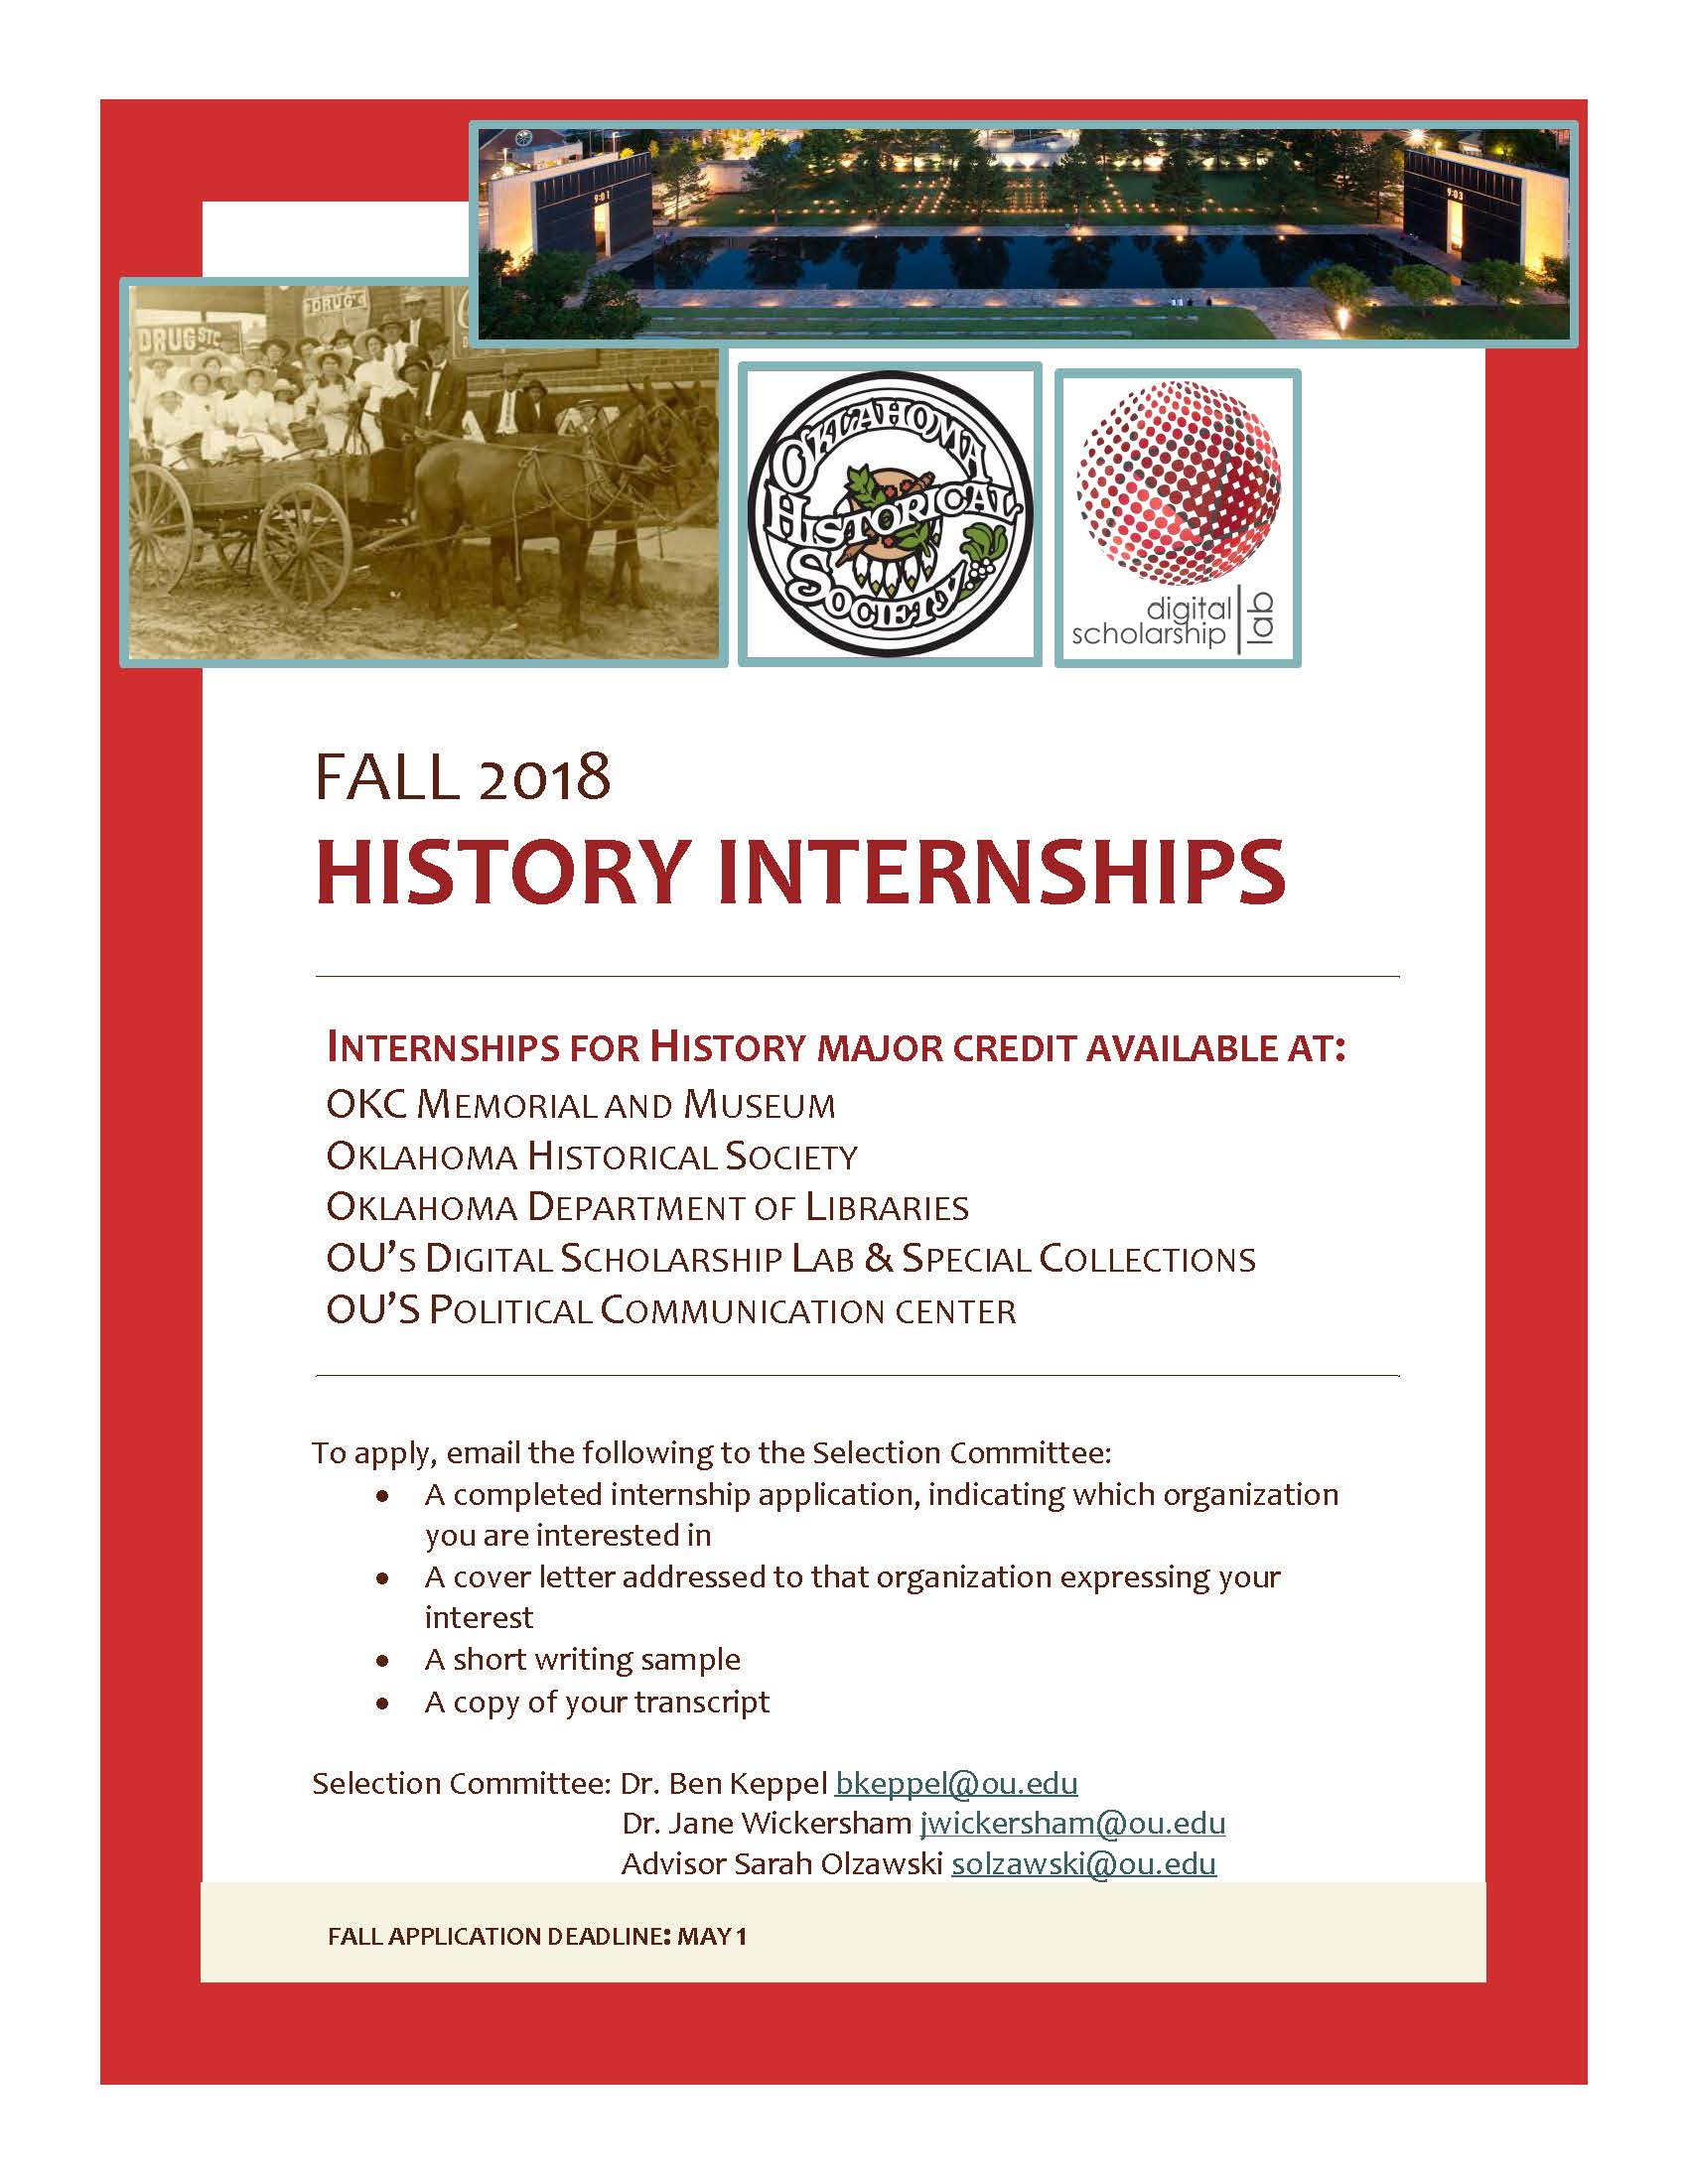 Apply for a Fall 2018 History Internship